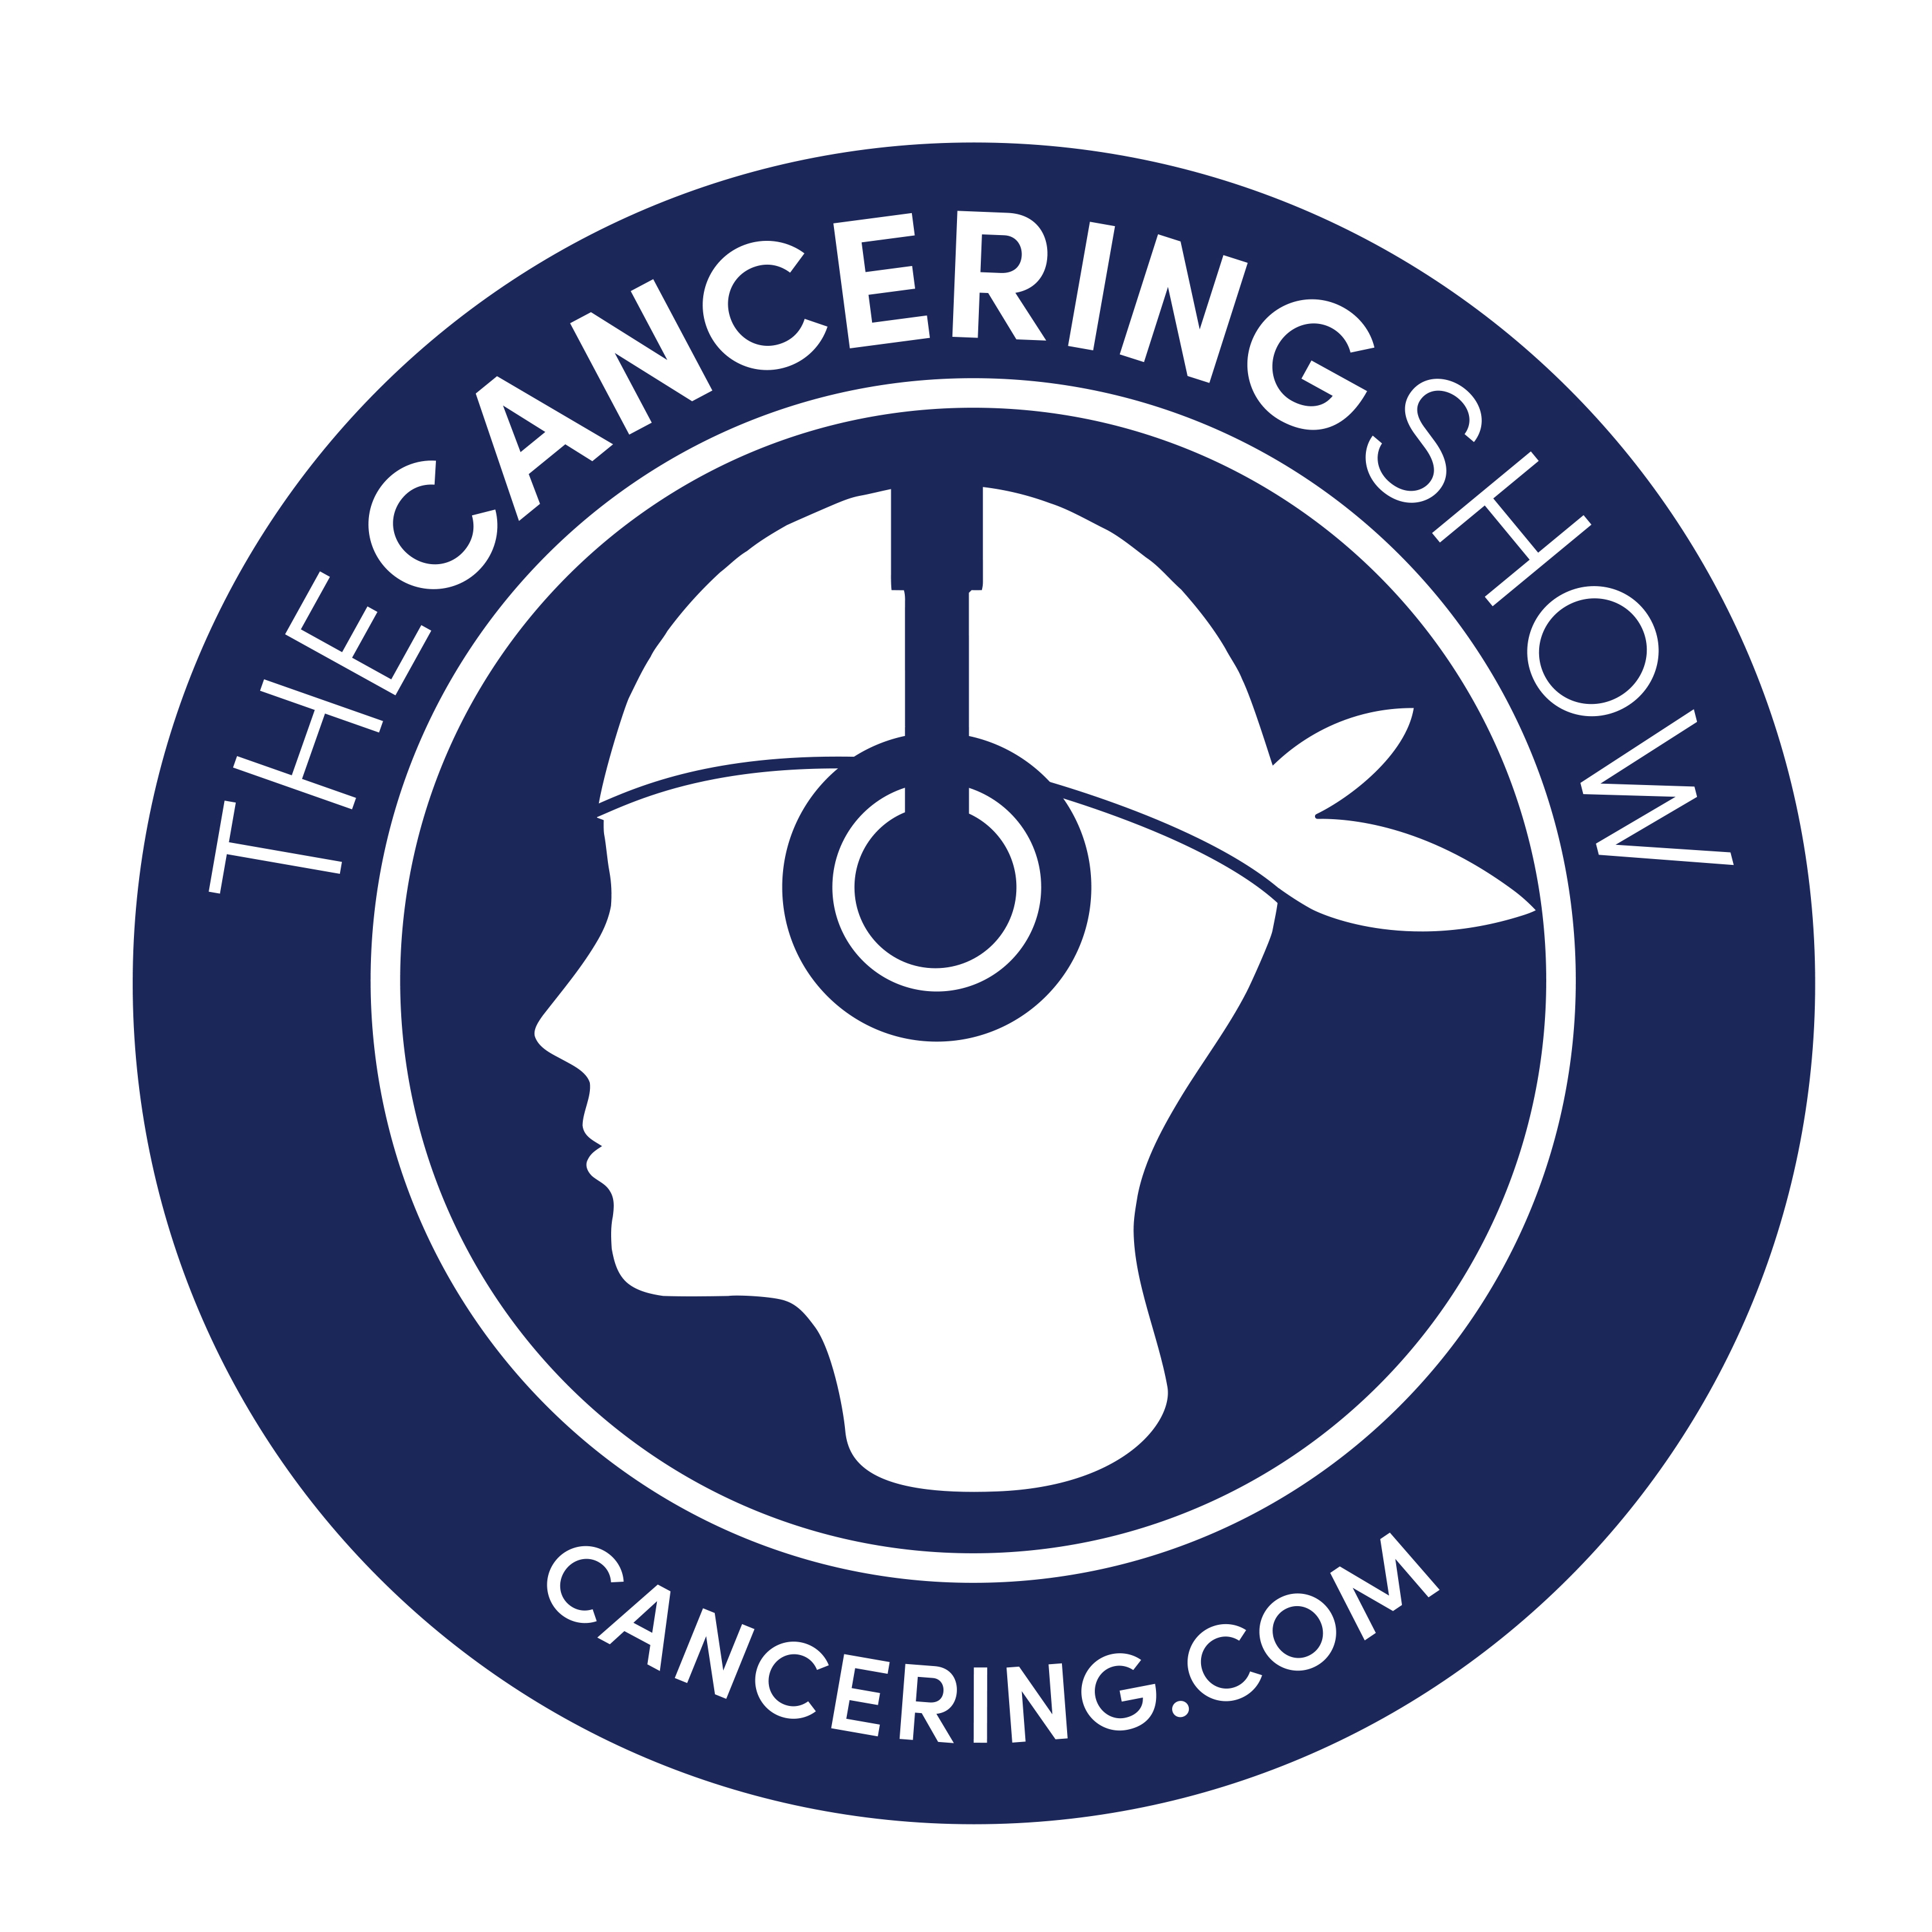 The Cancering Show show art